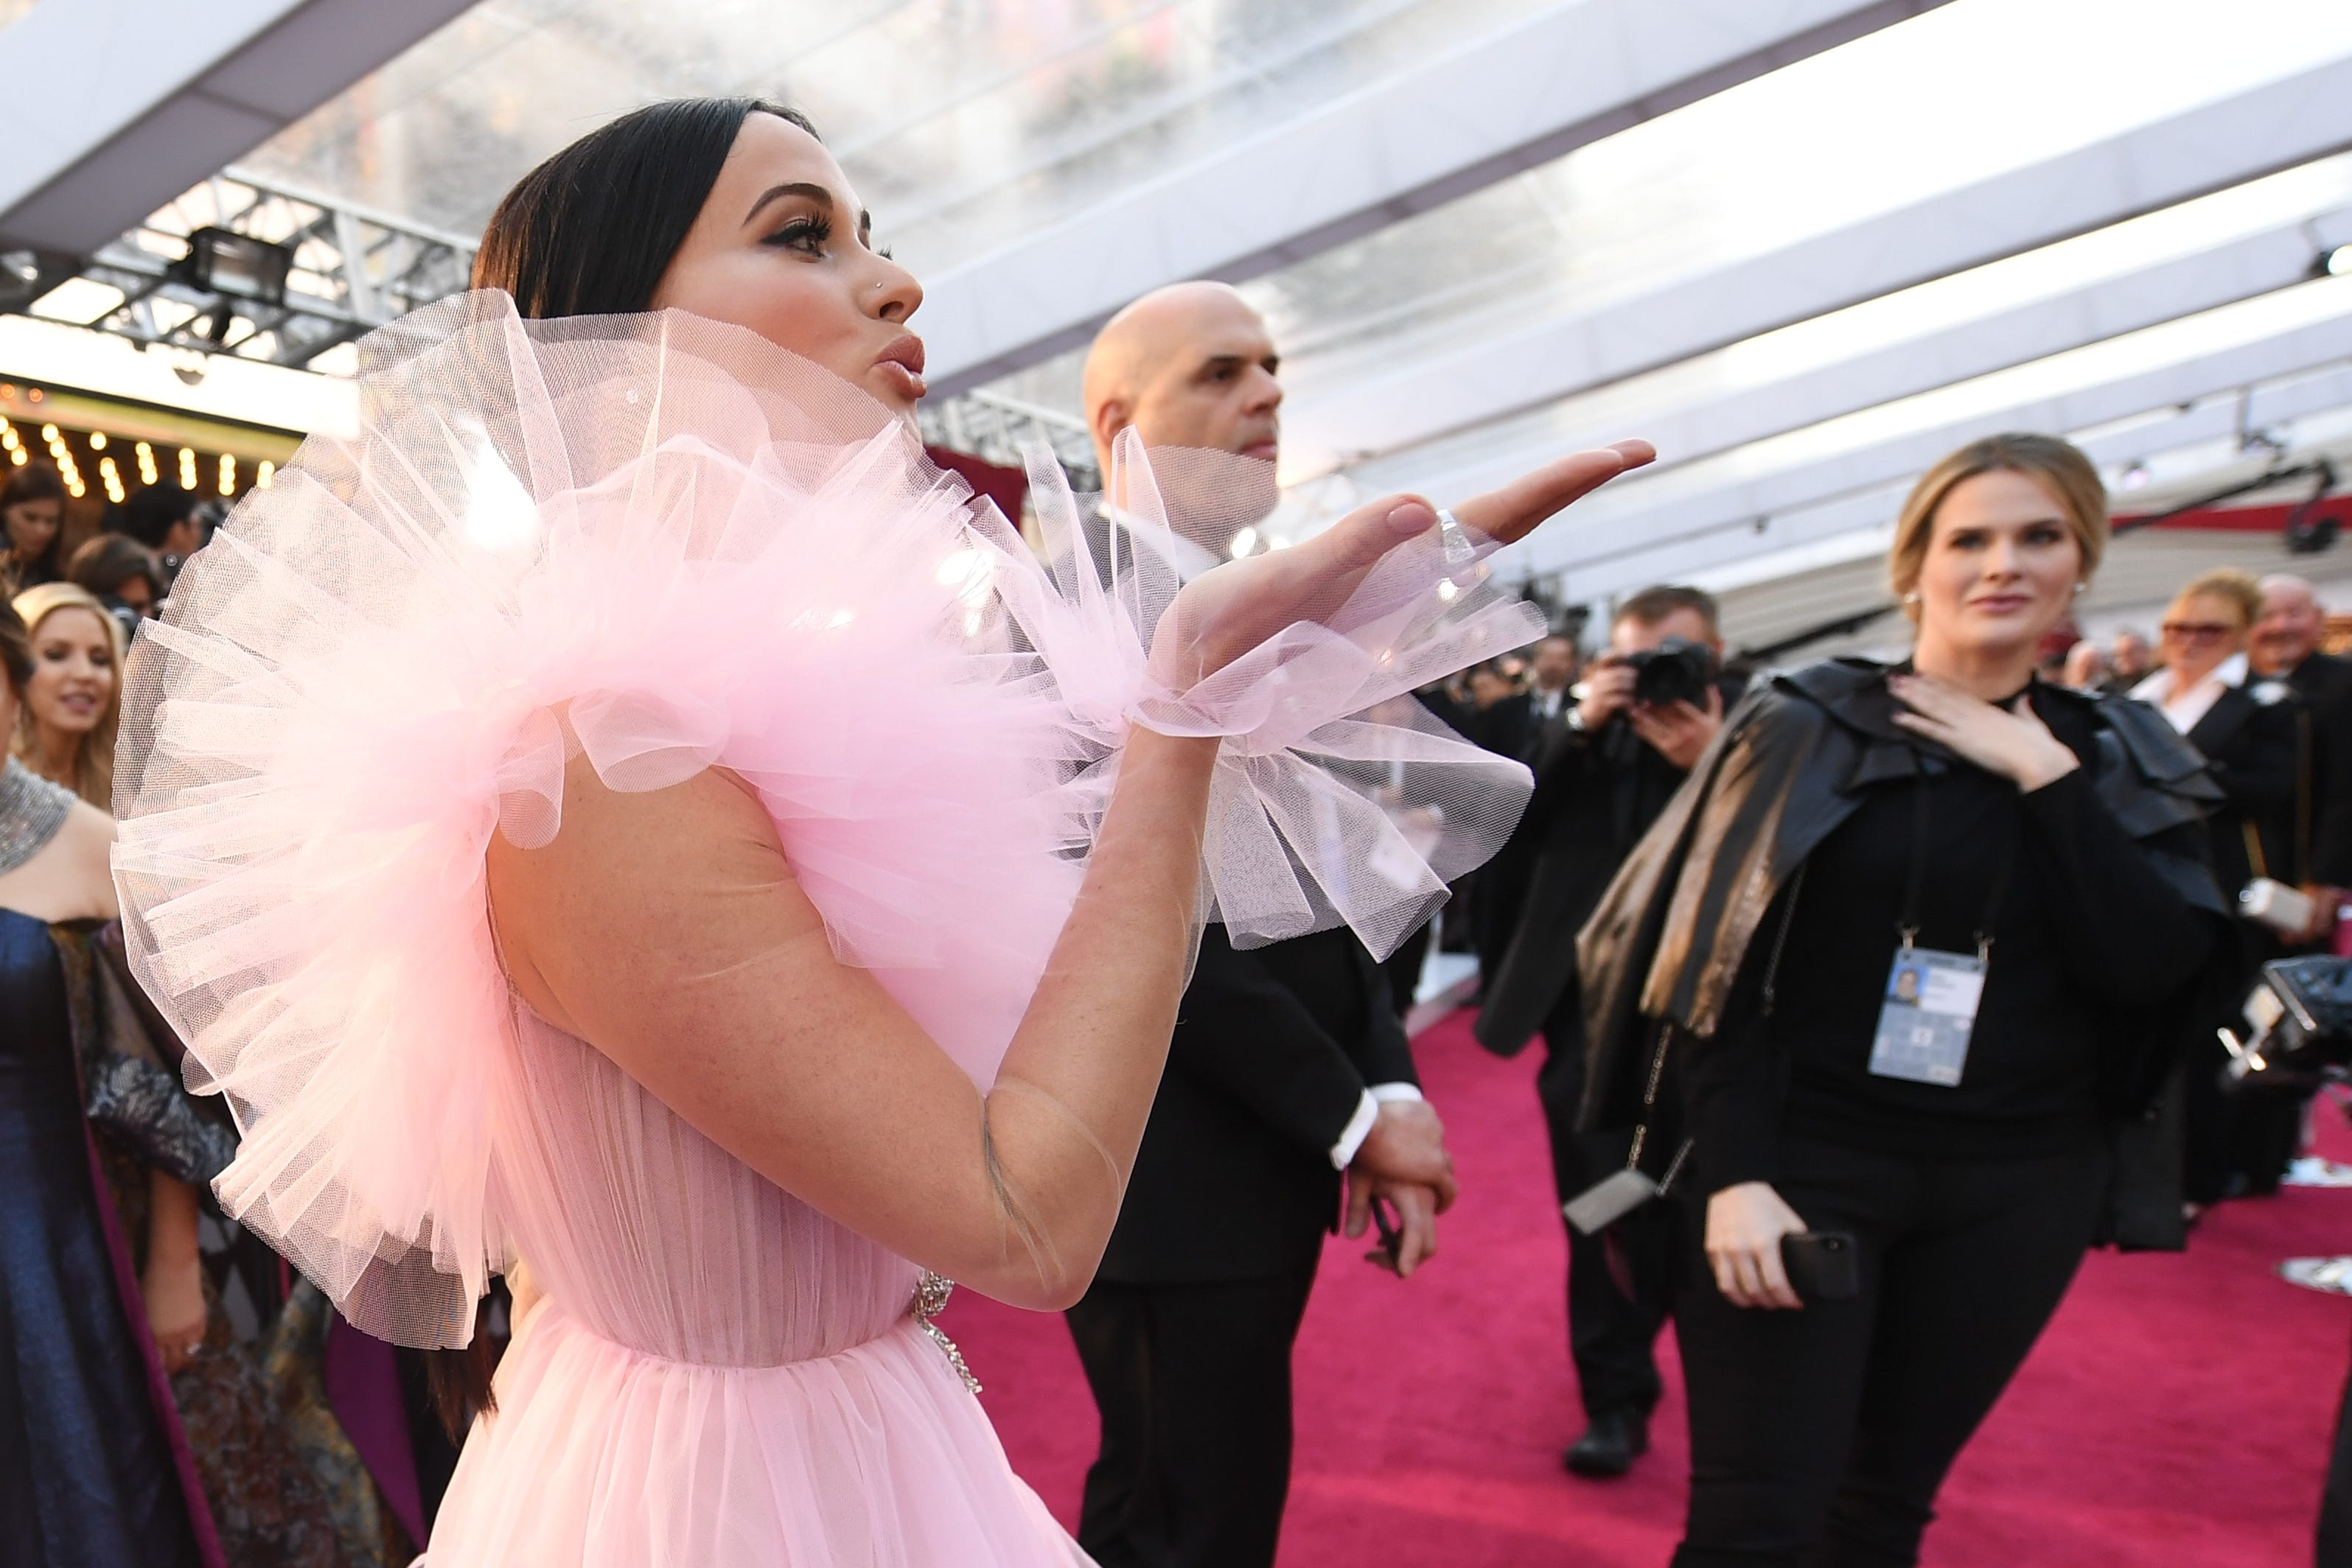 February 24, 2019; Los Angeles, CA, USA; Kacey Musgraves blows a kiss to fans as she arrives at the 91st Academy Awards at the Dolby Theatre. Mandatory Credit: Robert Hanashiro-USA TODAY NETWORK (Via OlyDrop)